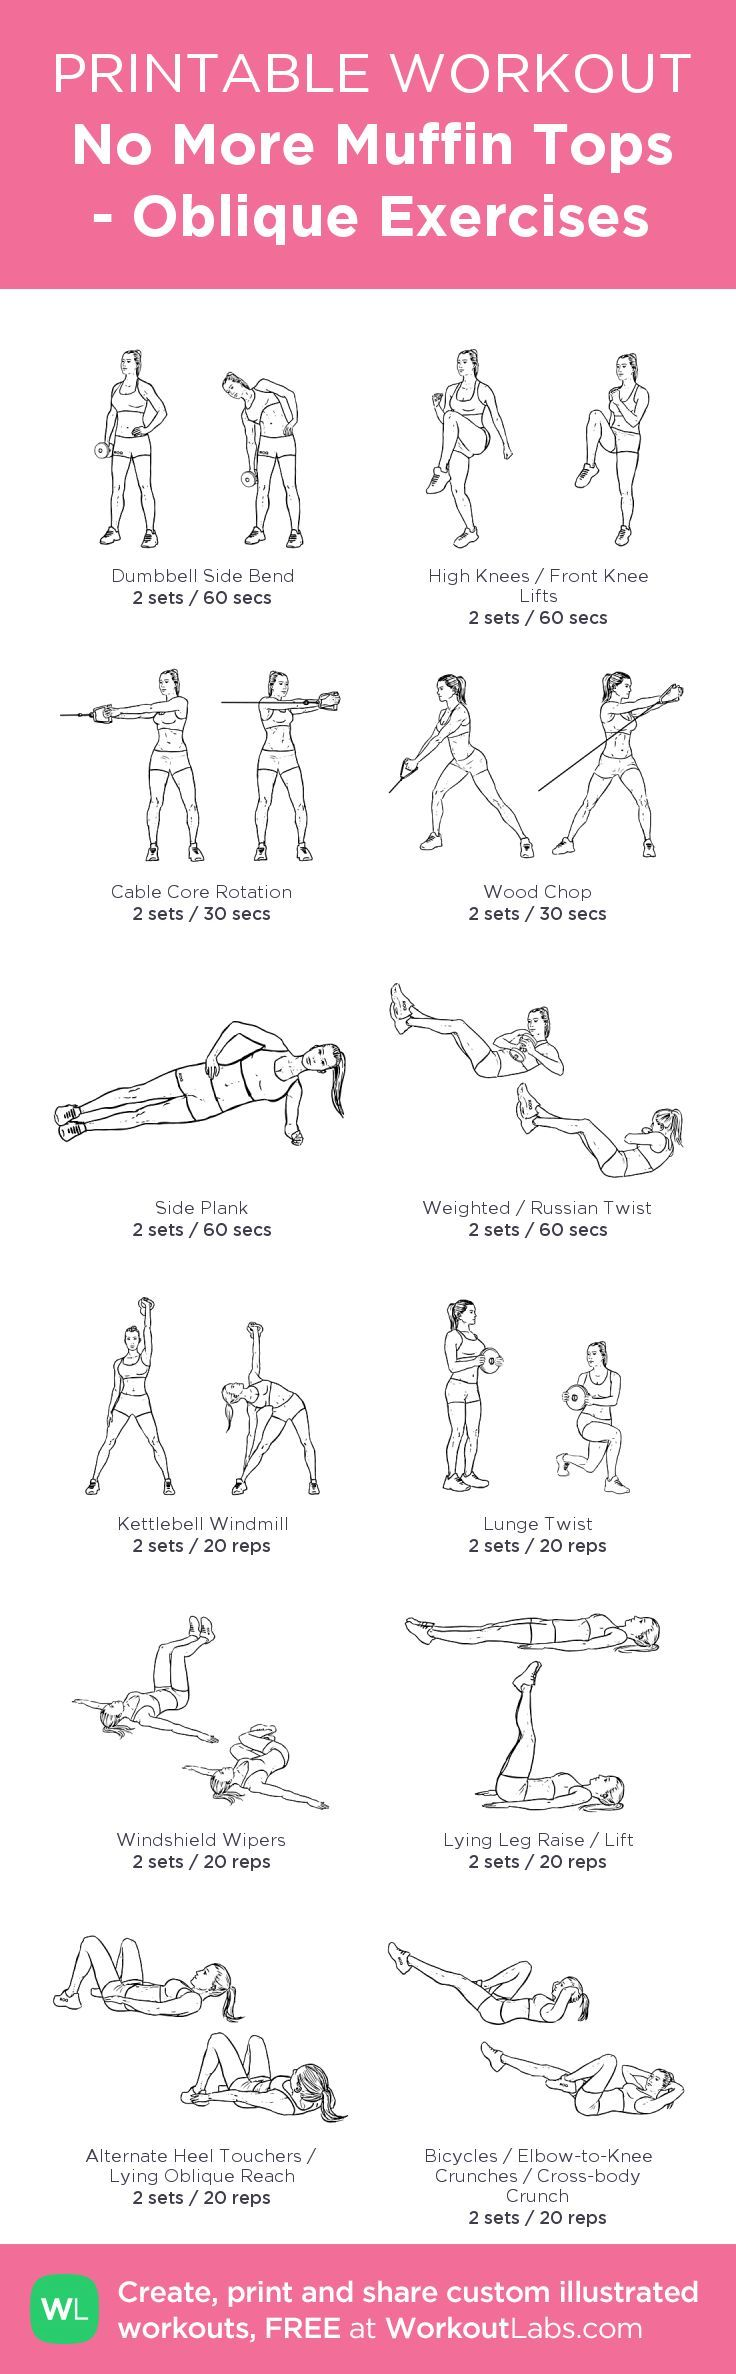 No More Muffin Tops - Oblique Exercises: Follow personal trainer at Pinterest.com/SuperDFitness now!